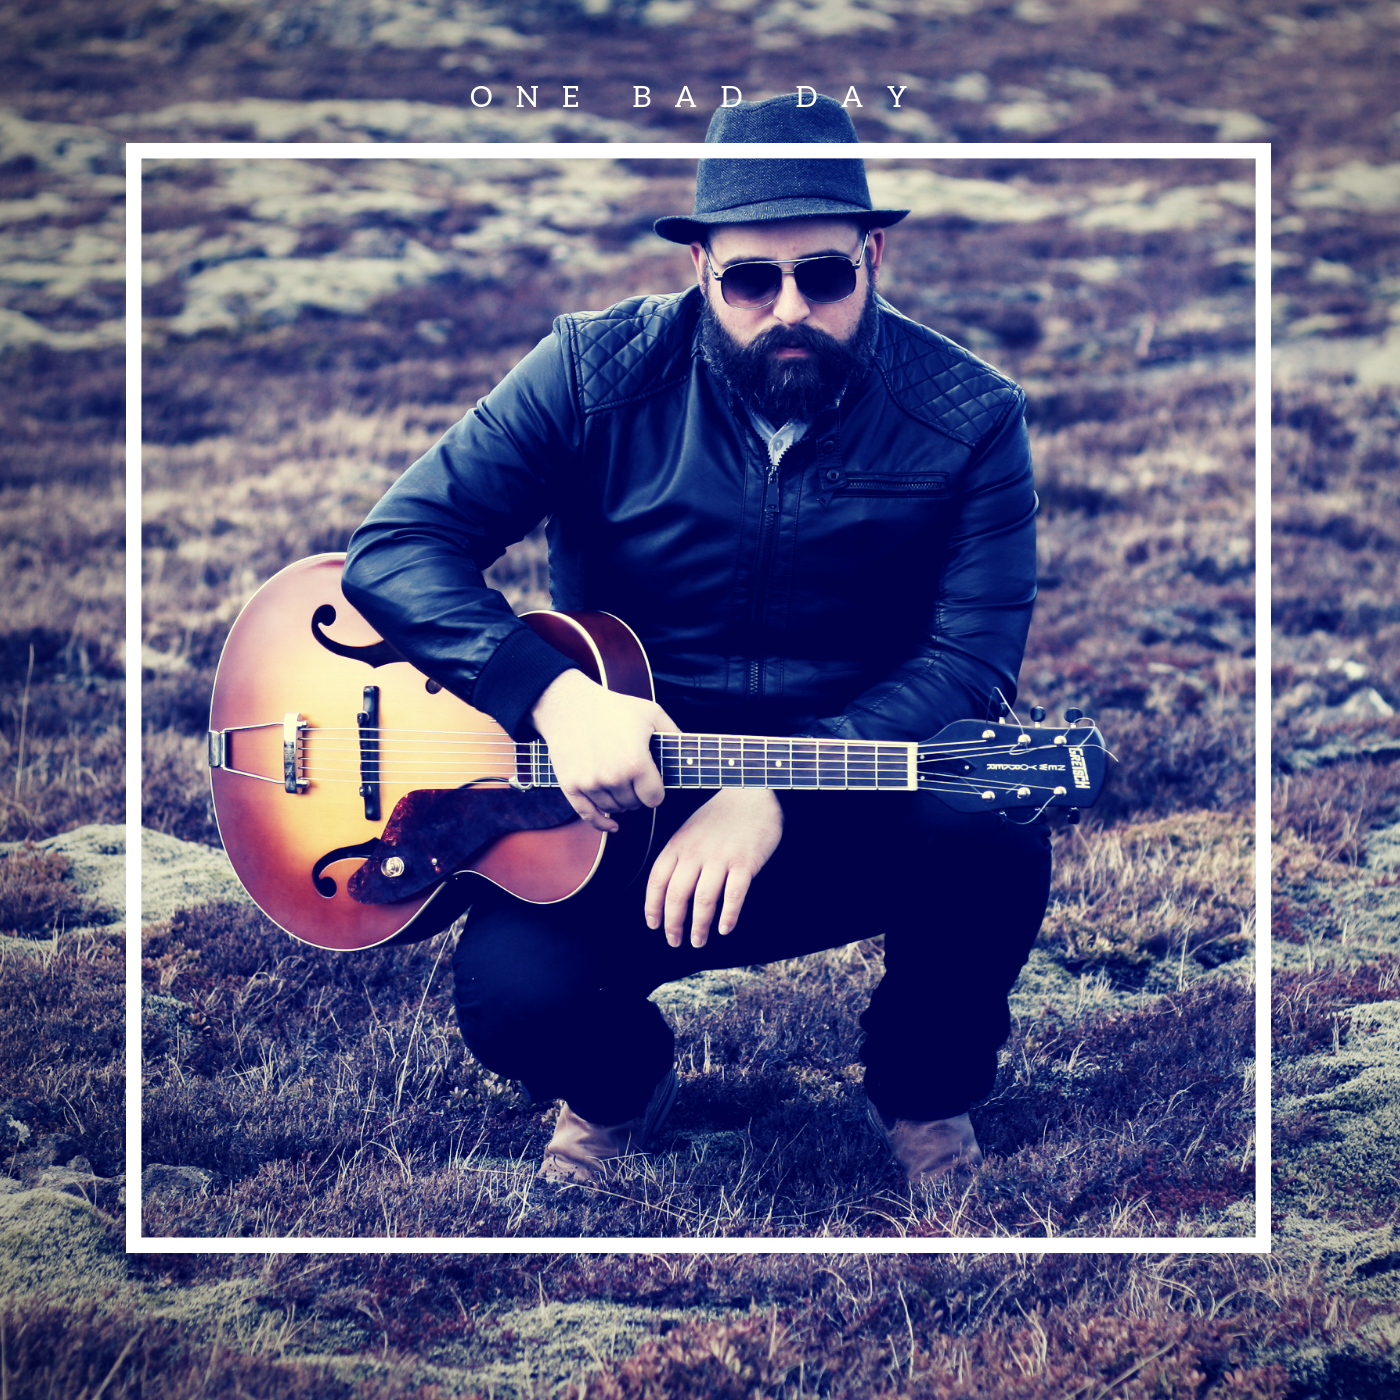 One Bad Day - The Creative Diary of Icelandic Singer-Songwriter Eyvindur Karlsson